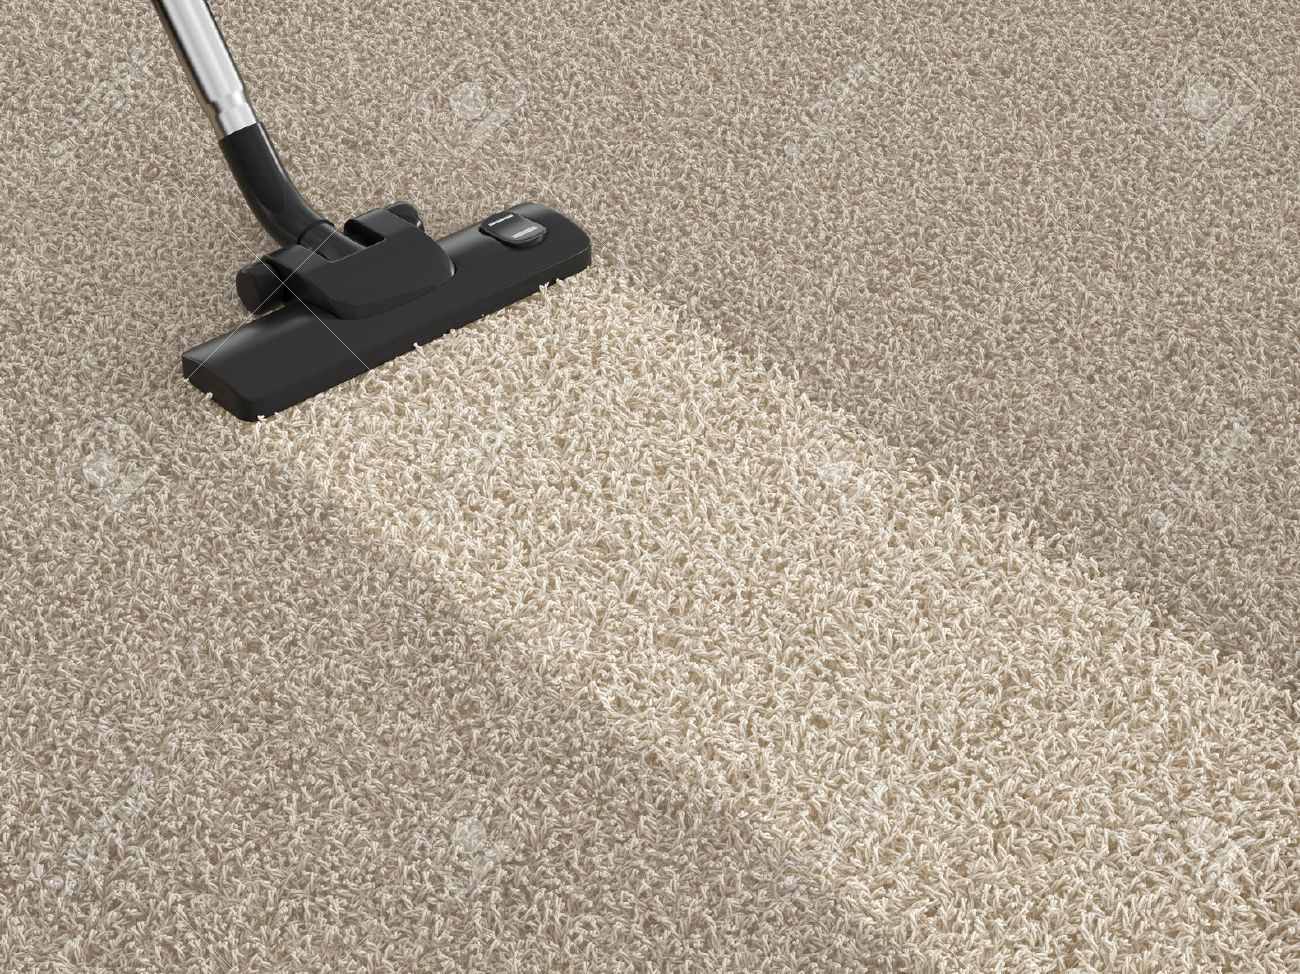 Exceptional Stock Photo   Vacuum Cleaner On The Dirty Carpet. House Cleaning Concept